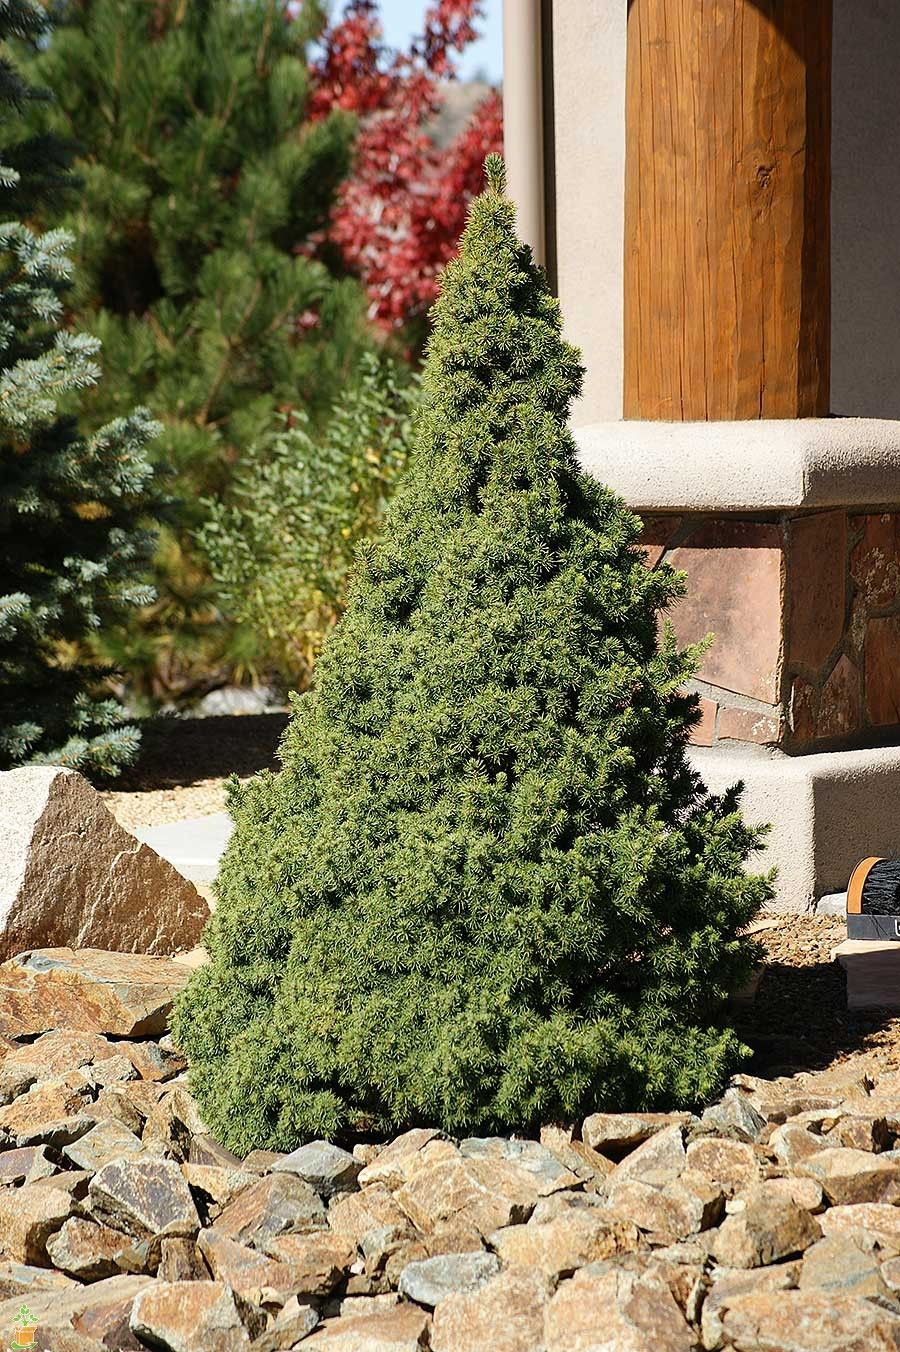 Dwarf alberta spruce tree with boulders garden for Best dwarf trees for landscaping